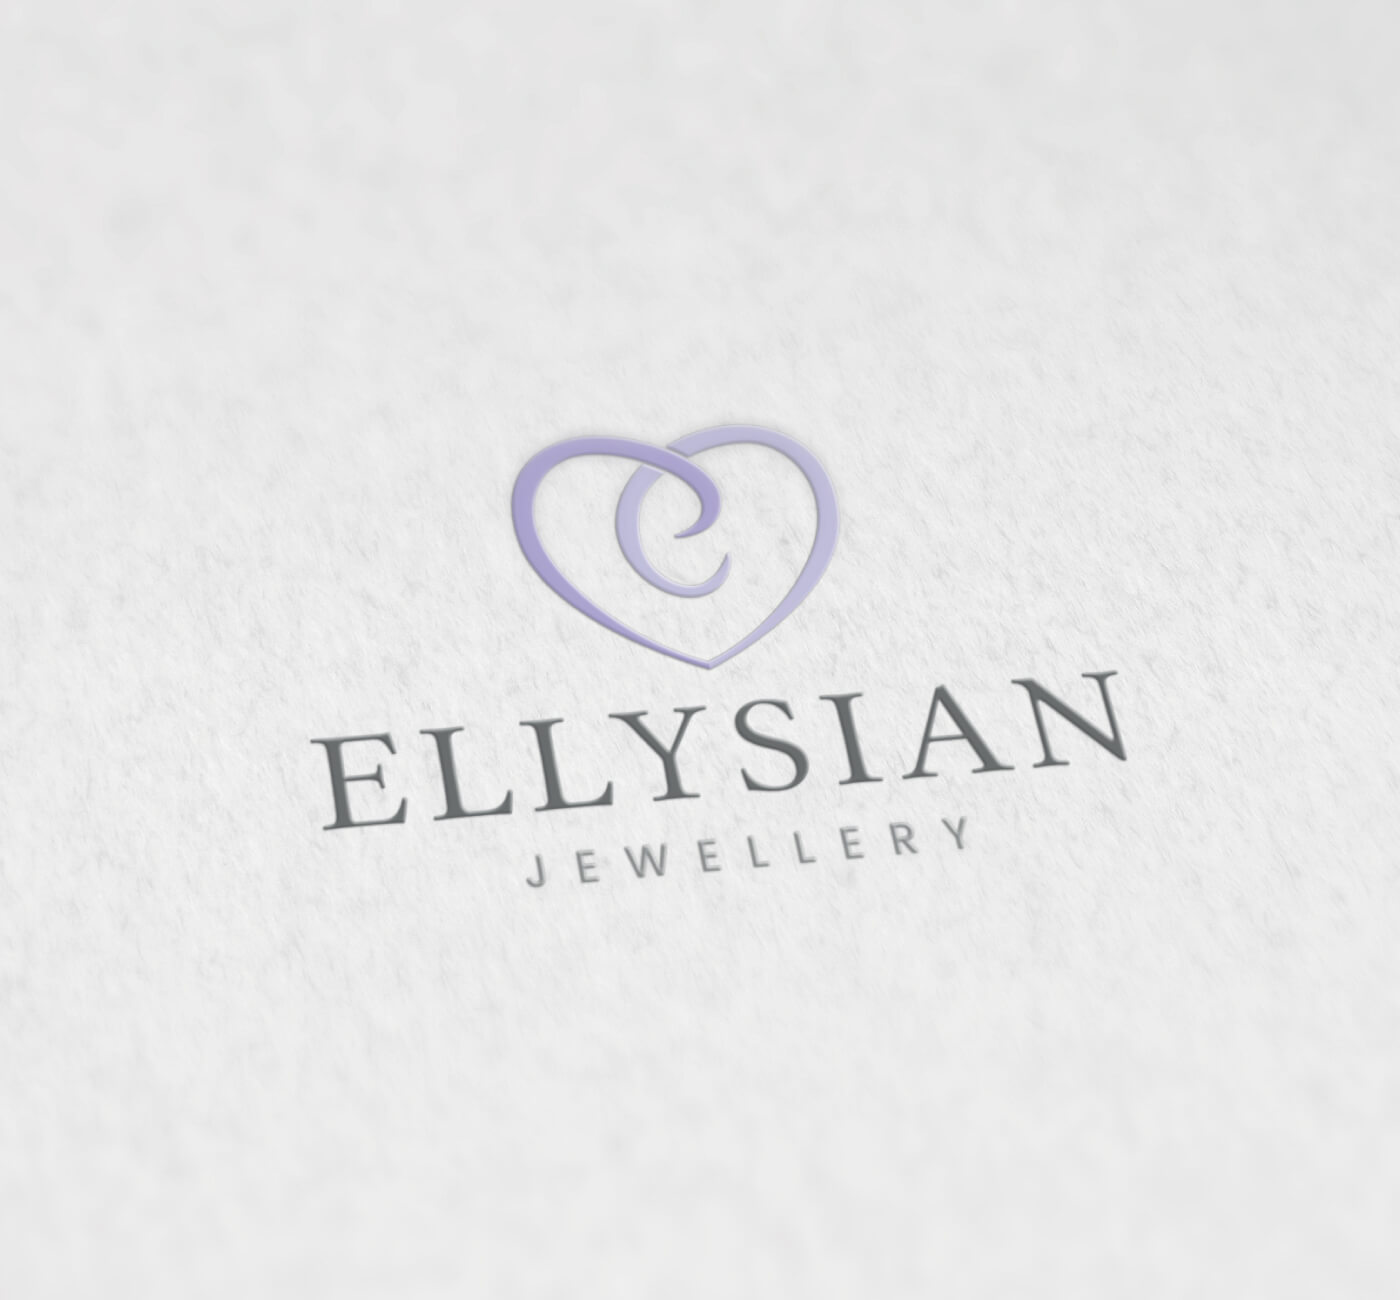 Ellysian Jewellery Logo